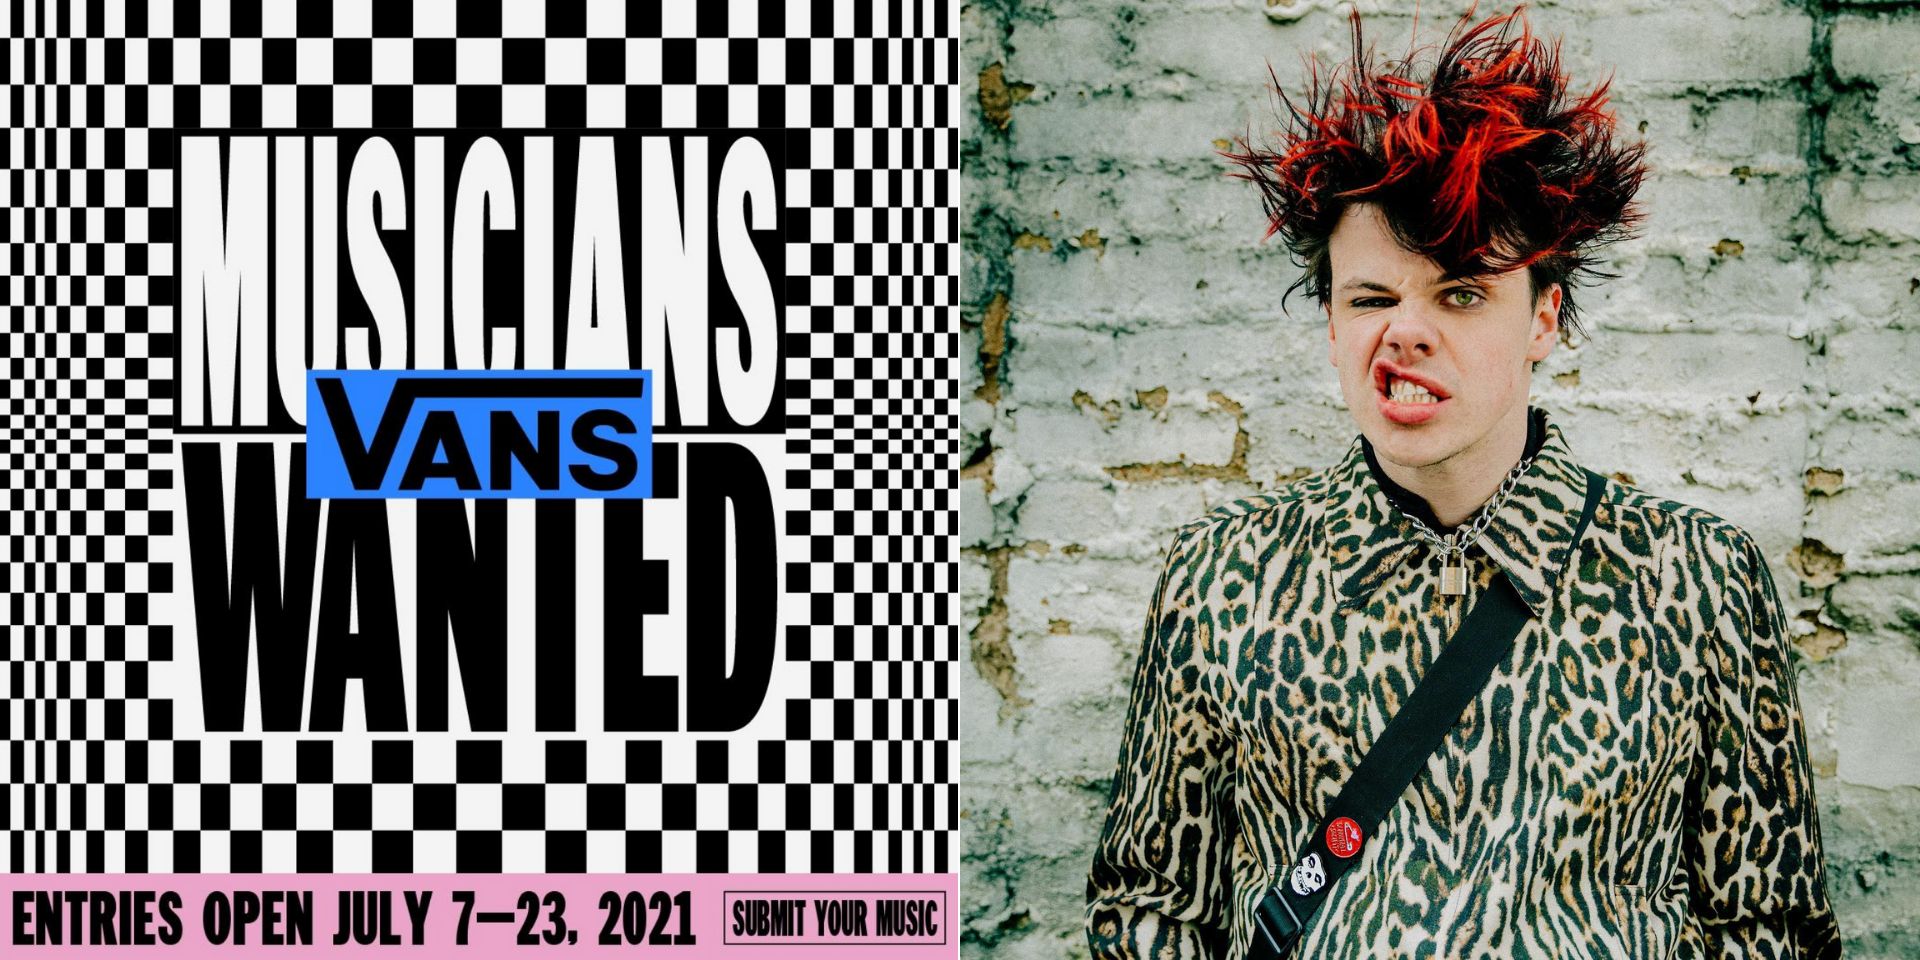 Vans Musicians Wanted 2021 now open for original music submissions, global winner to share the stage with YUNGBLUD